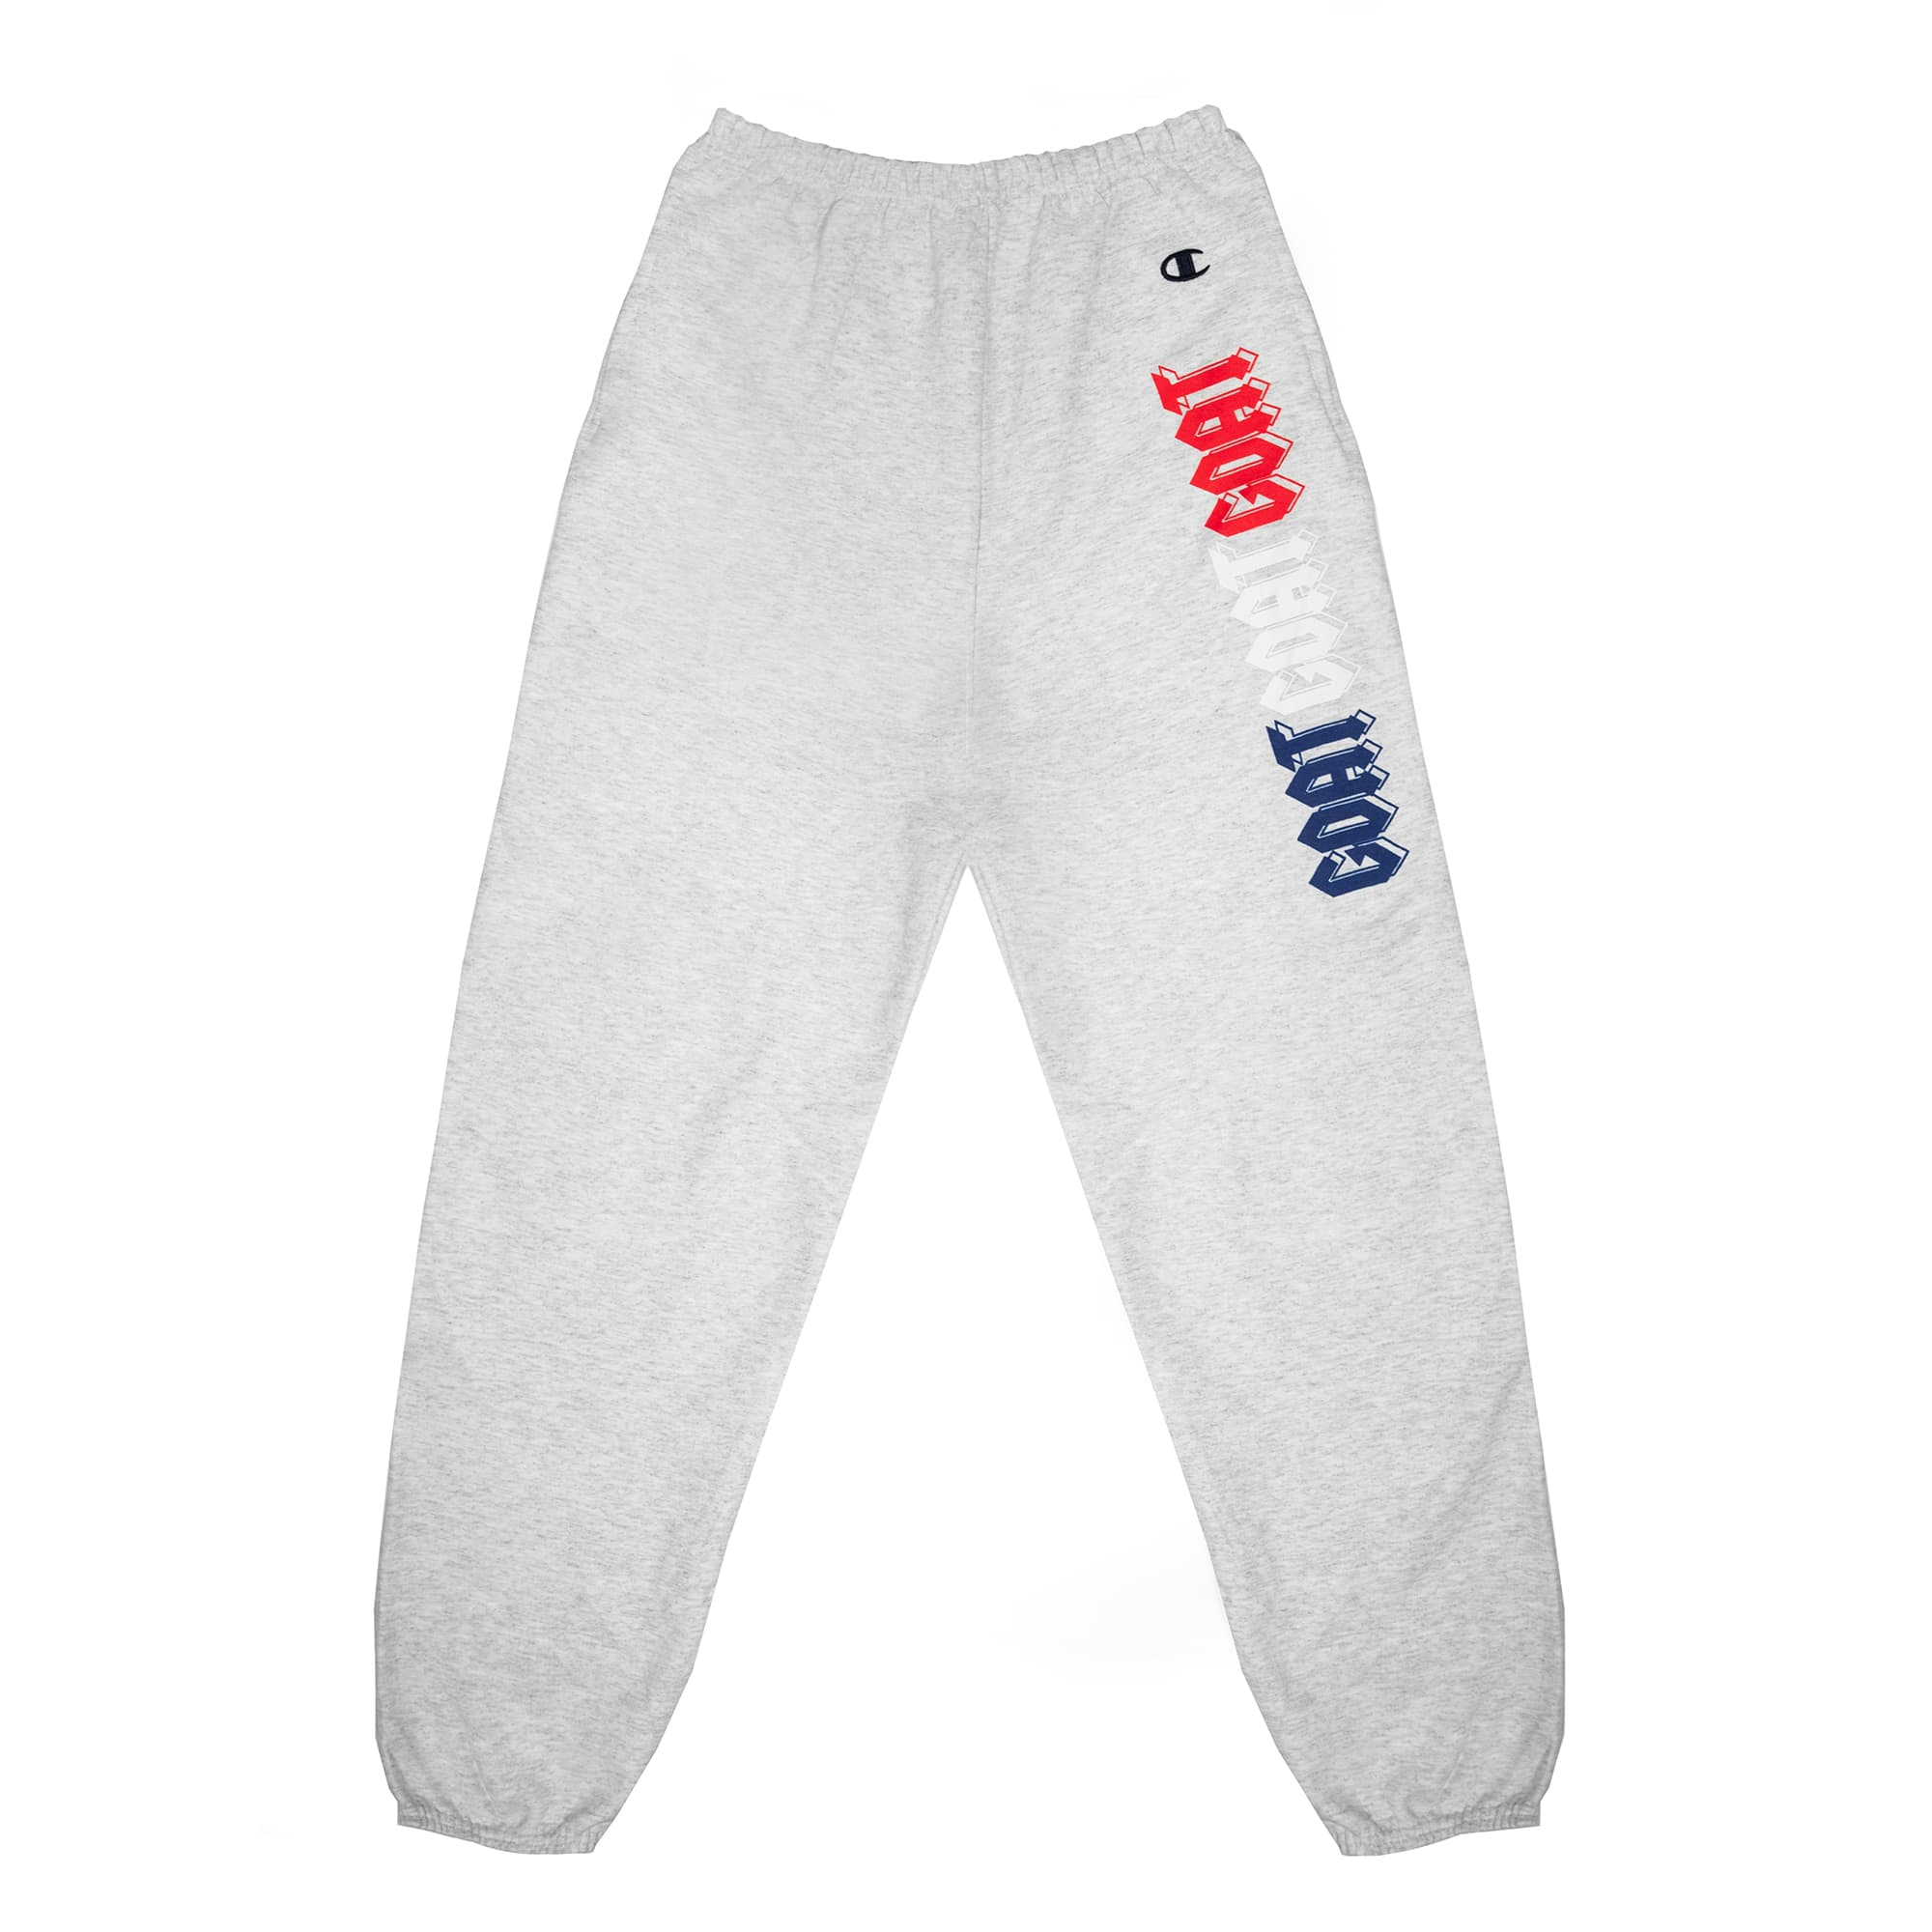 Erika Costell x Champion Metal GOAT Unisex Sweatpants